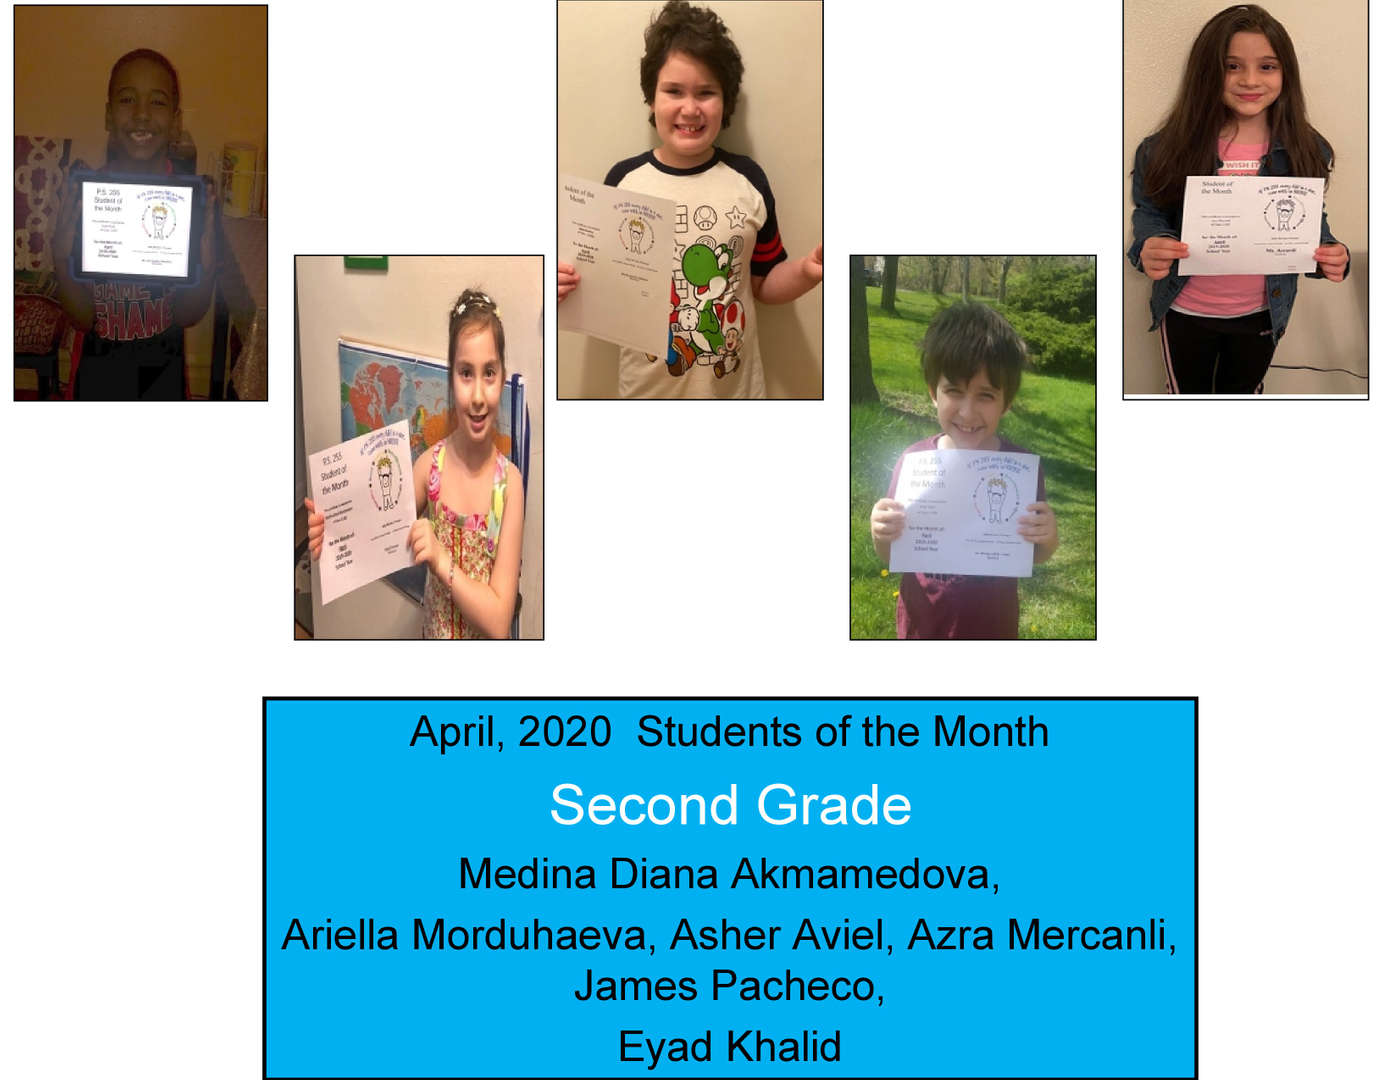 More students for April Student of the Month Grade 2